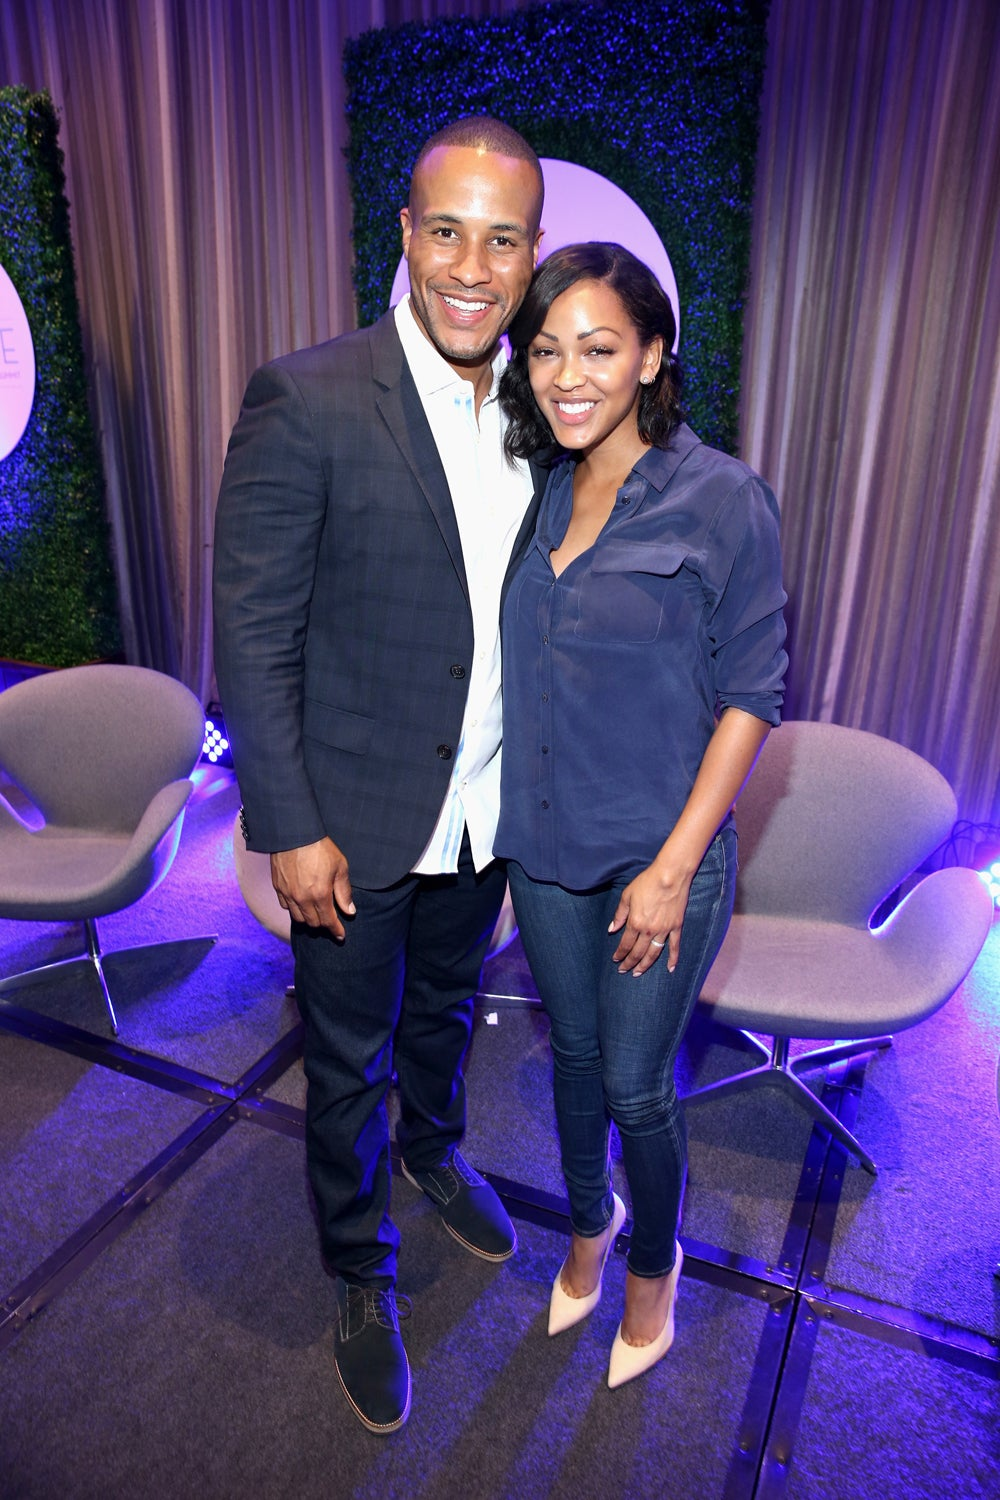 Meagan Good: 'You Don't Need to be with Someone to be Complete'